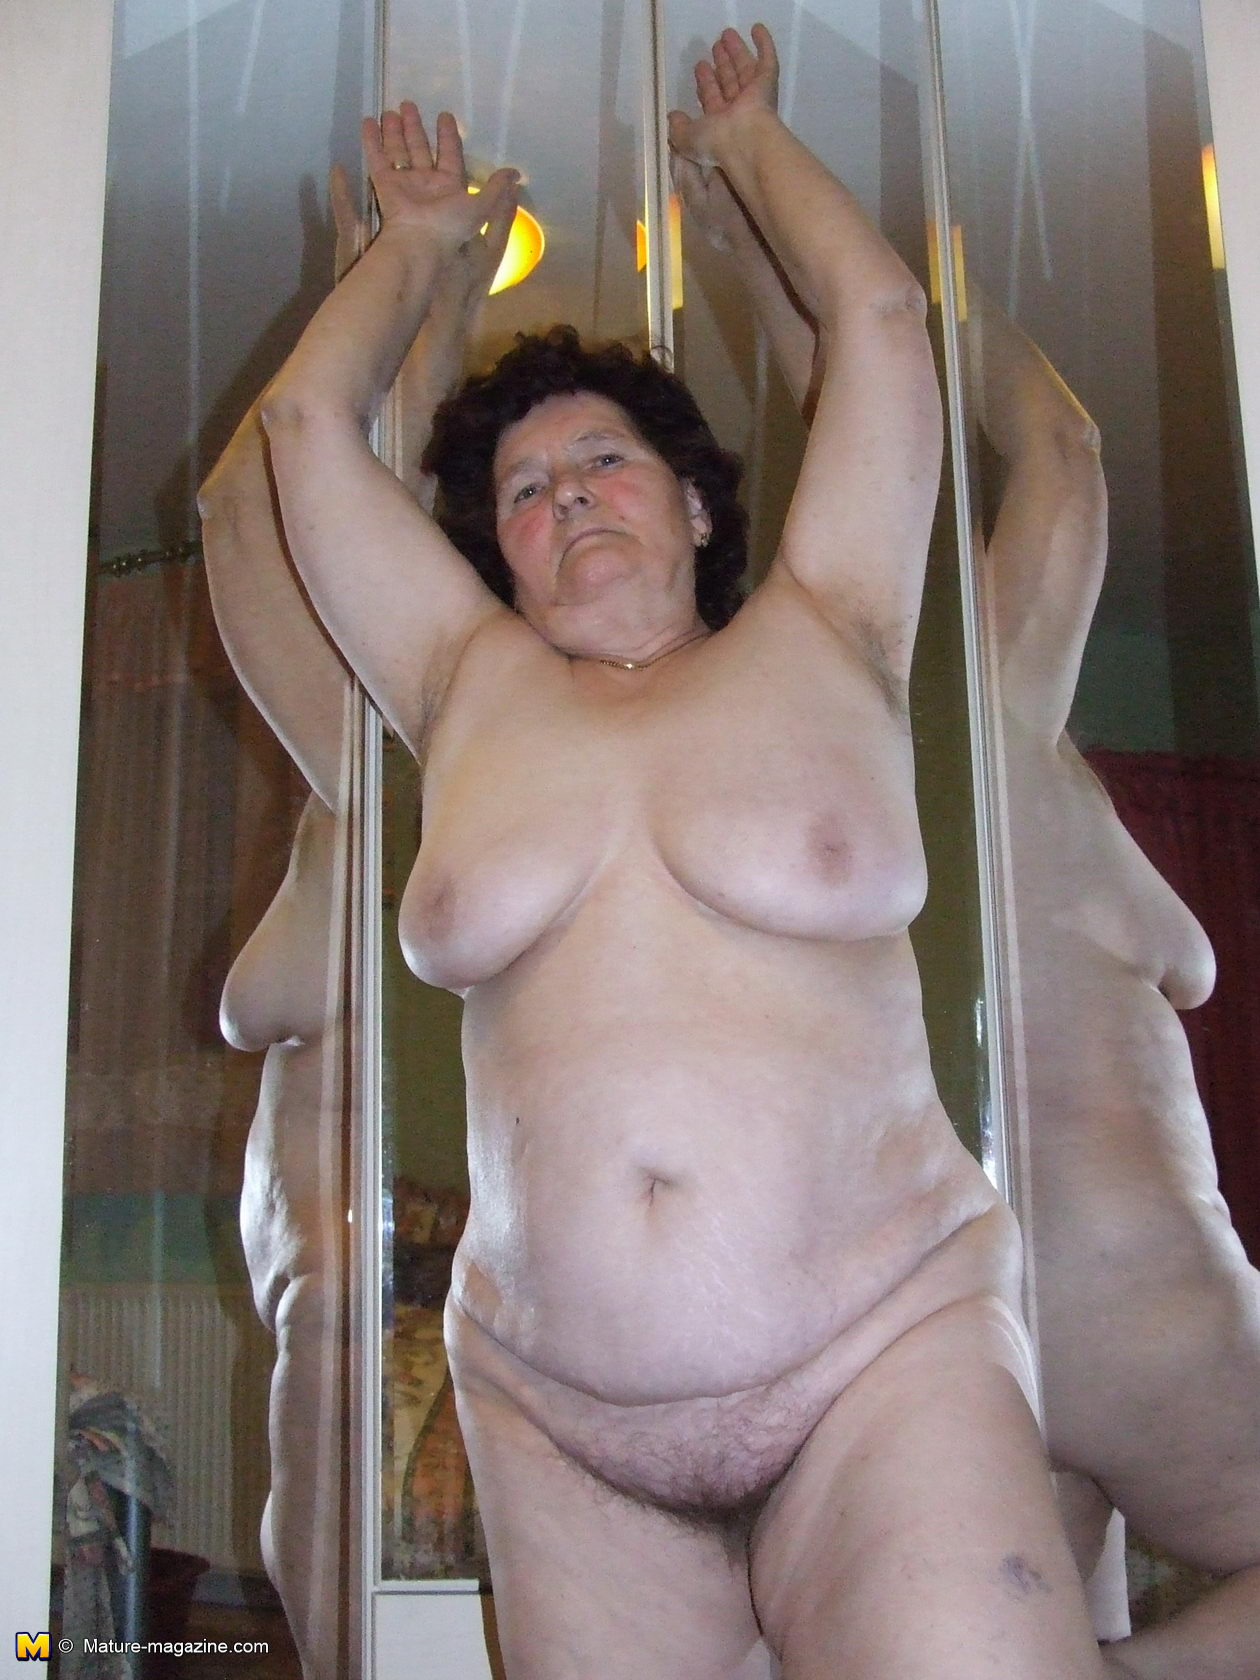 oldies pussy galleries annul